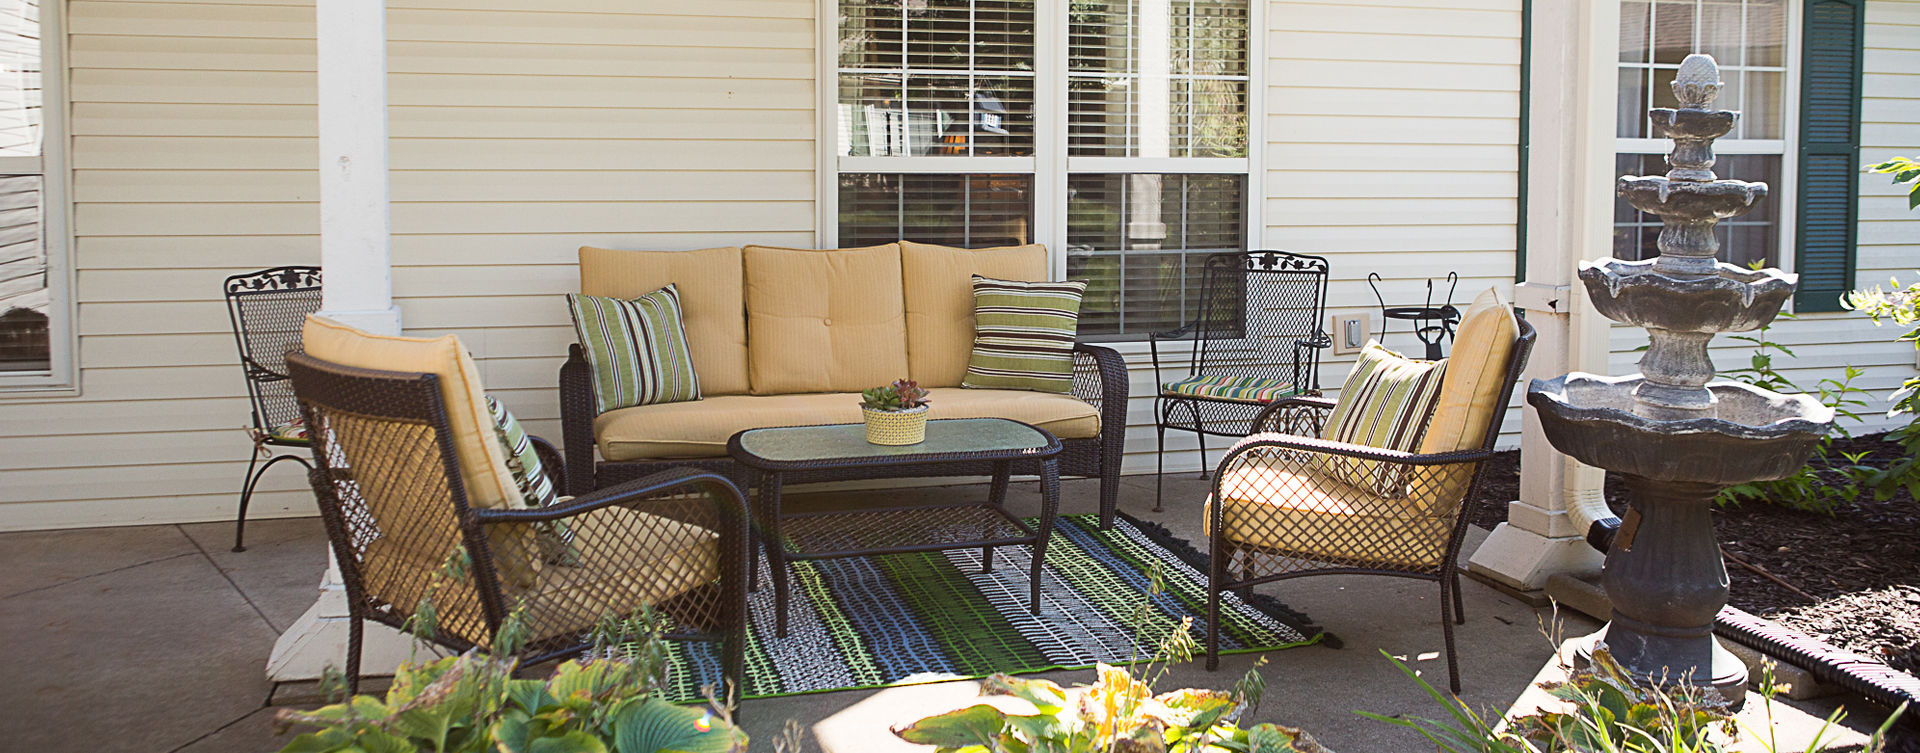 Sip on your favorite drink on the porch at Bickford of Muscatine